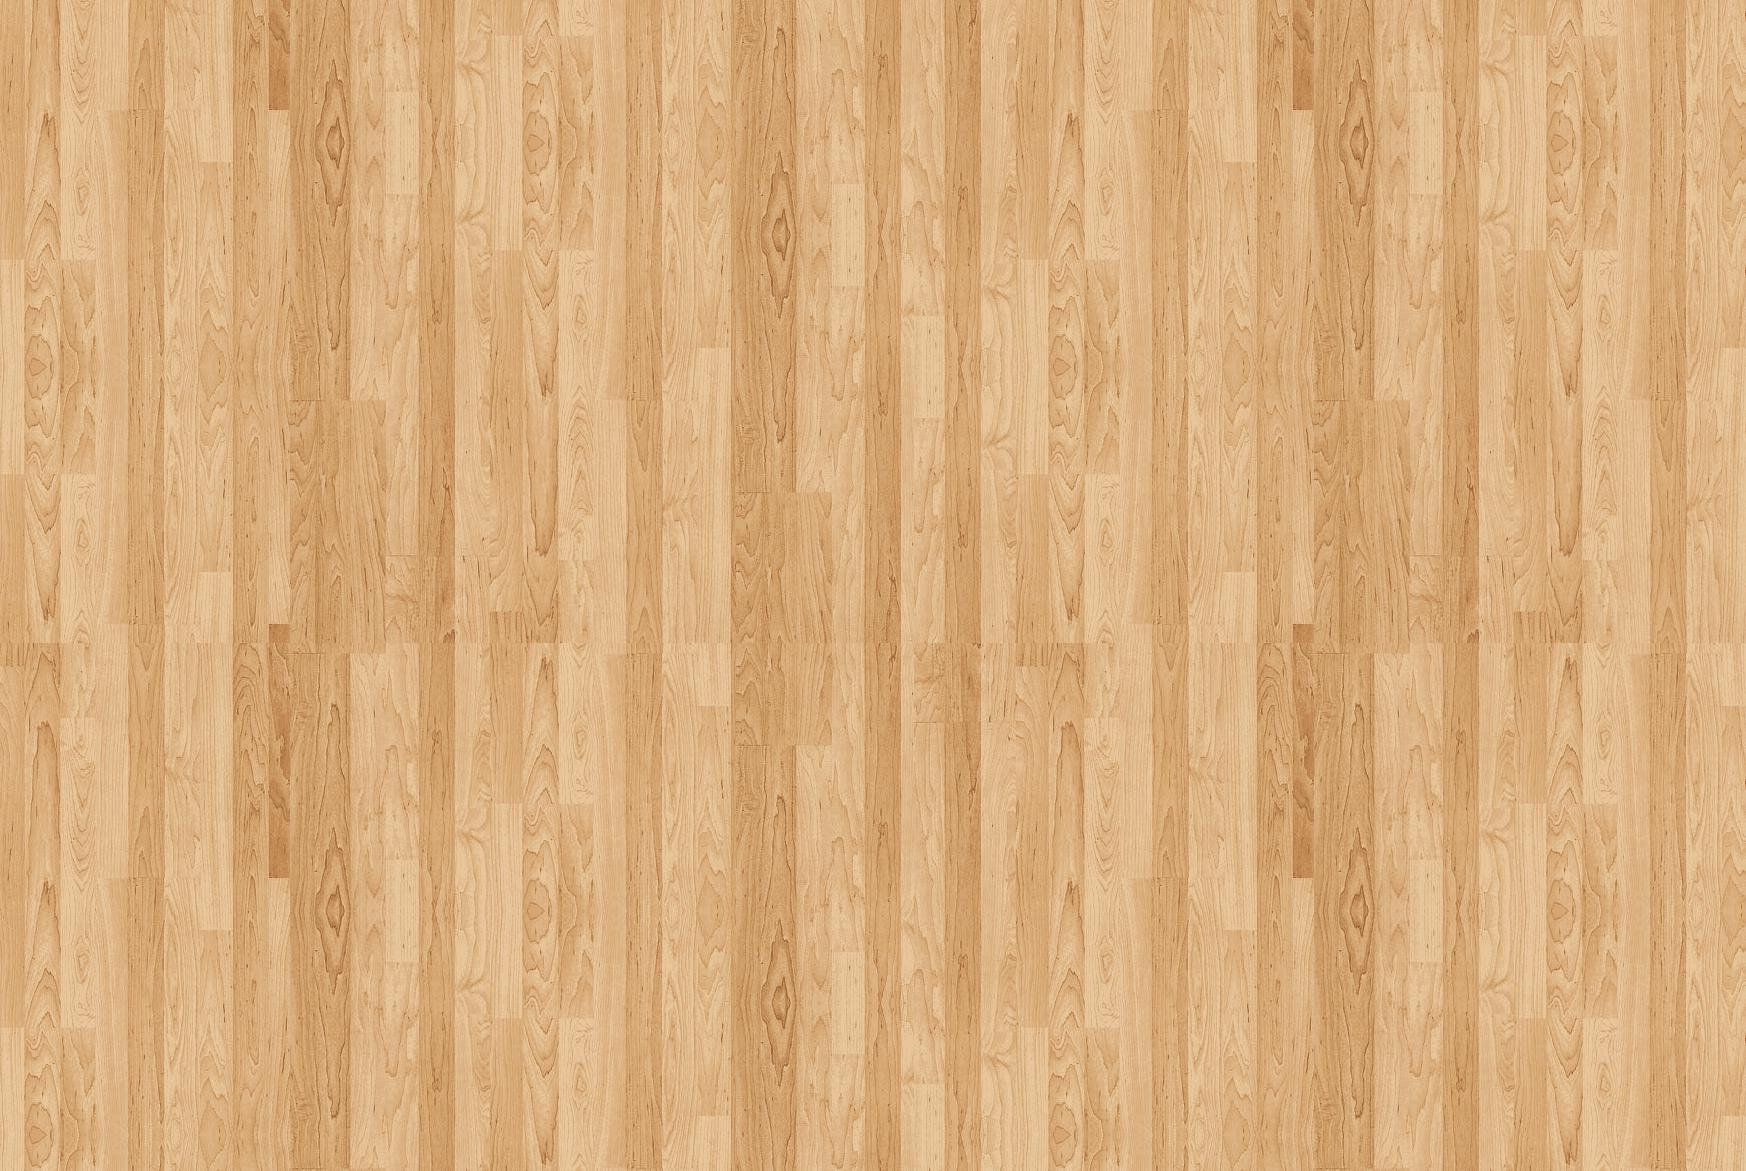 Light Wood Wallpaper